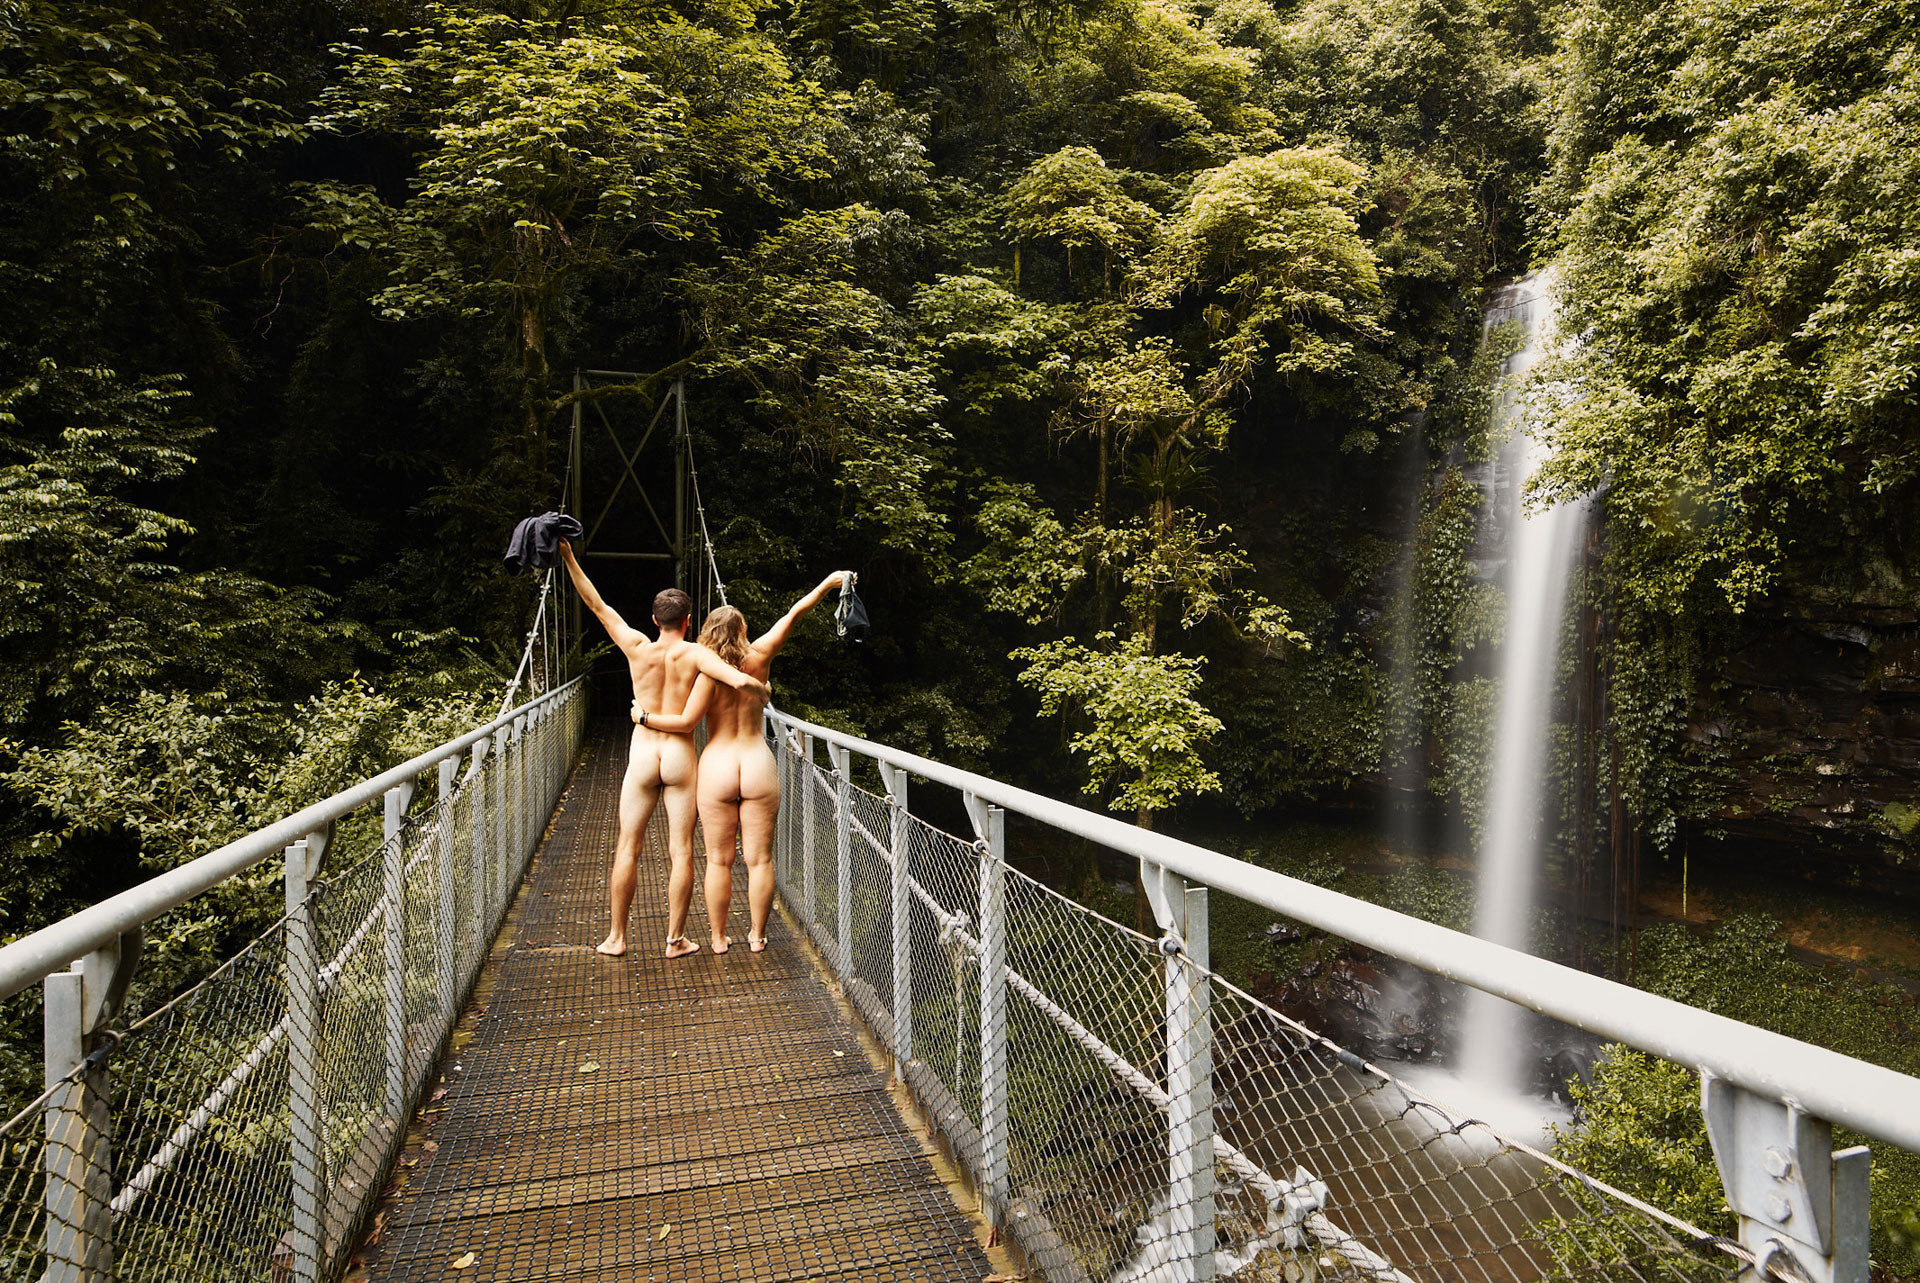 How To Get Nude for Mother Nature (Hint: She's Seen It Before), joe brn Cuzzocrea, nude, crystal shower falls, dorrigo national park, nsw